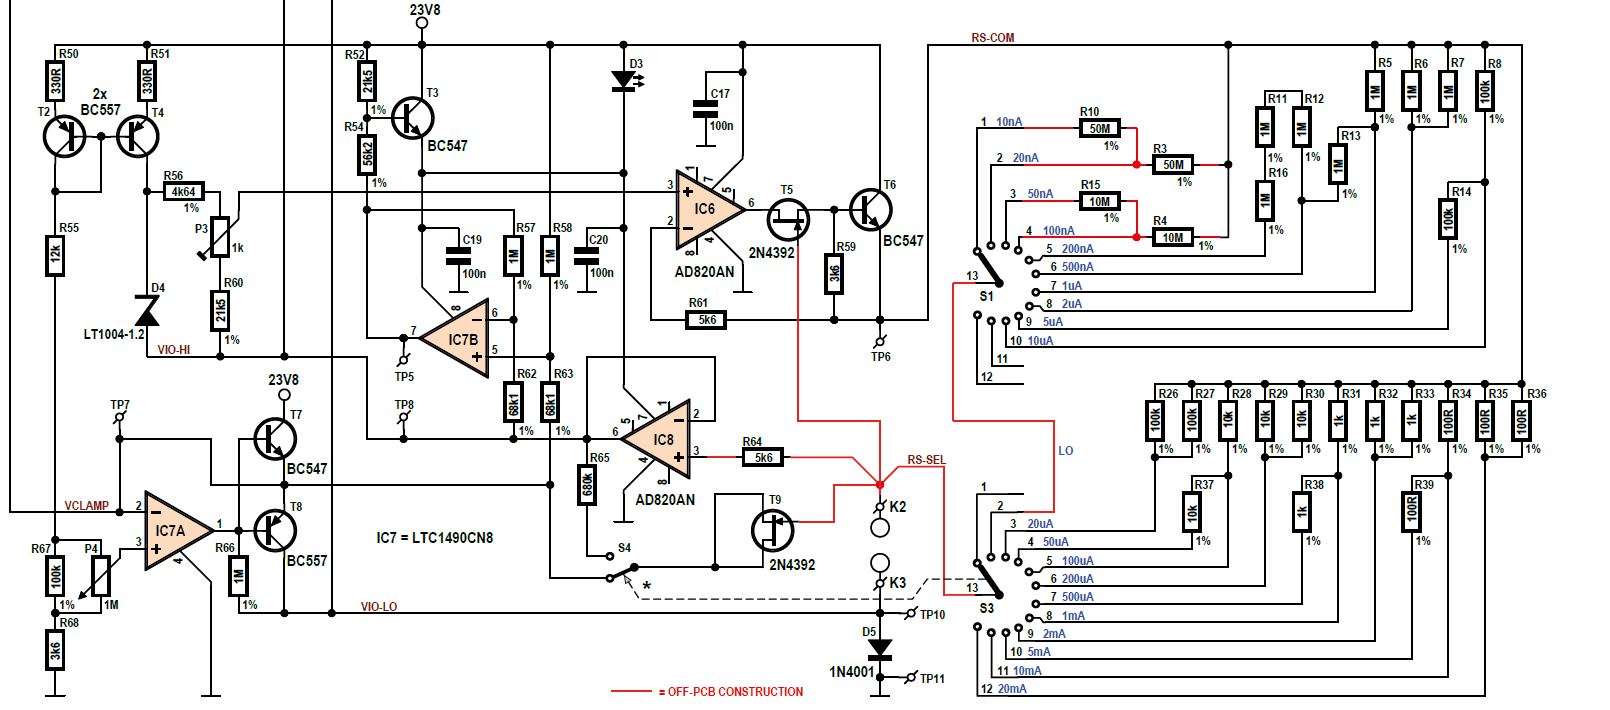 Component usage in this constant-current source circuit